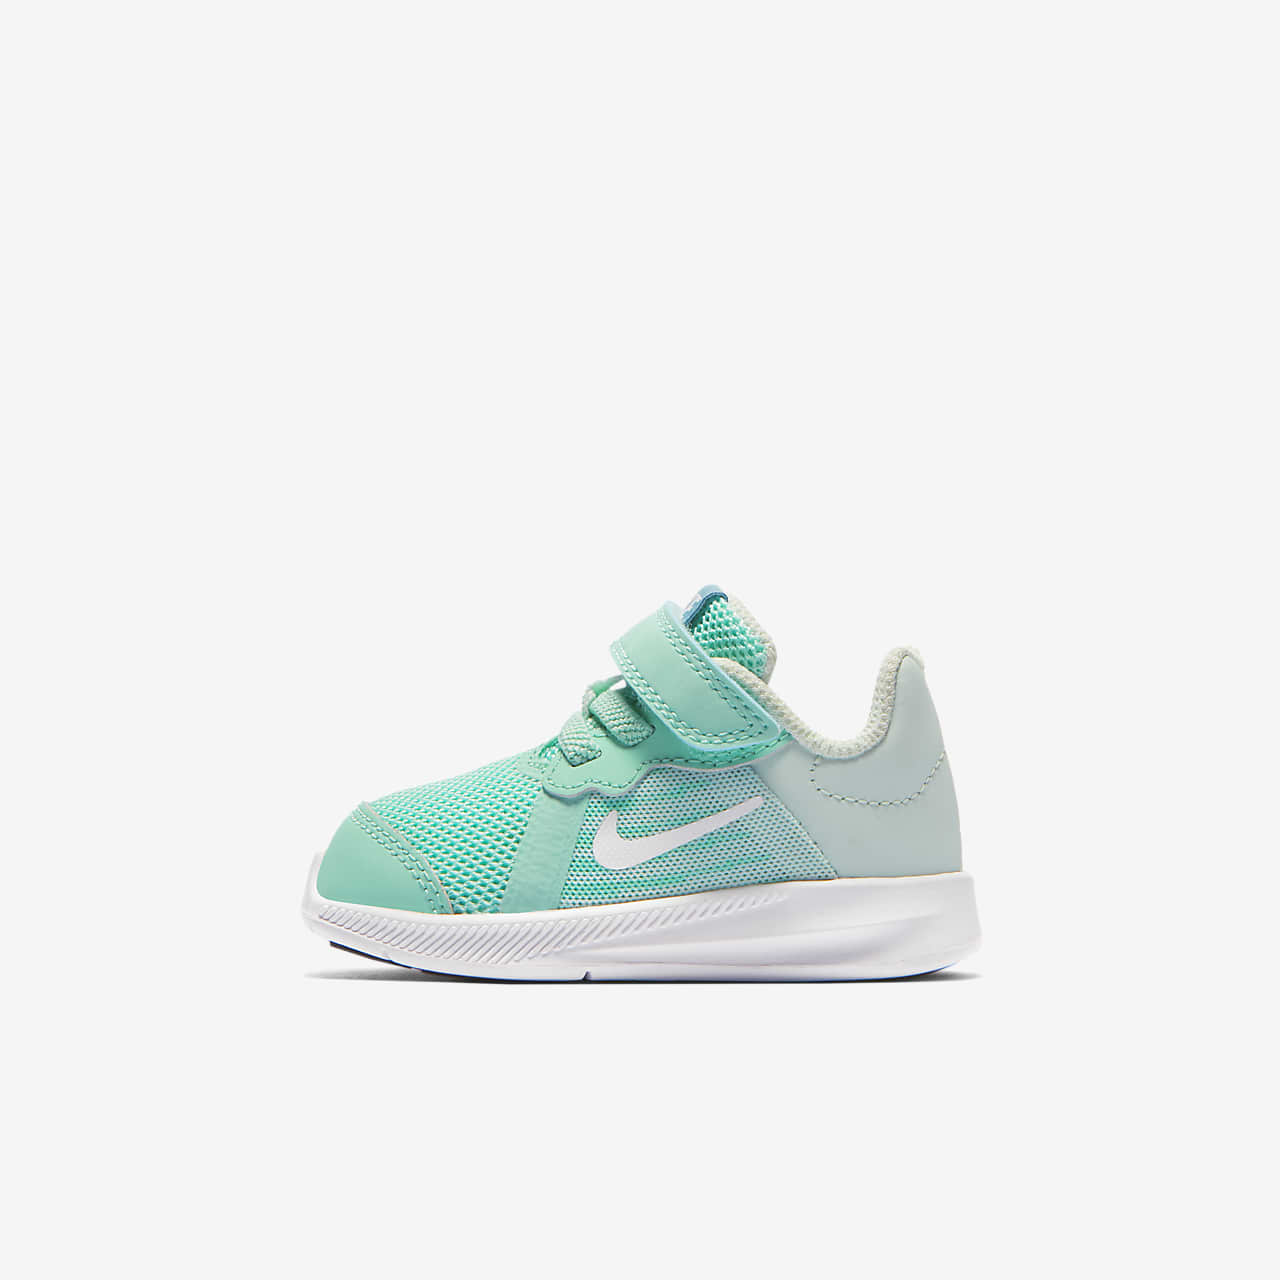 Nike Downshifter 8 Baby and Toddler